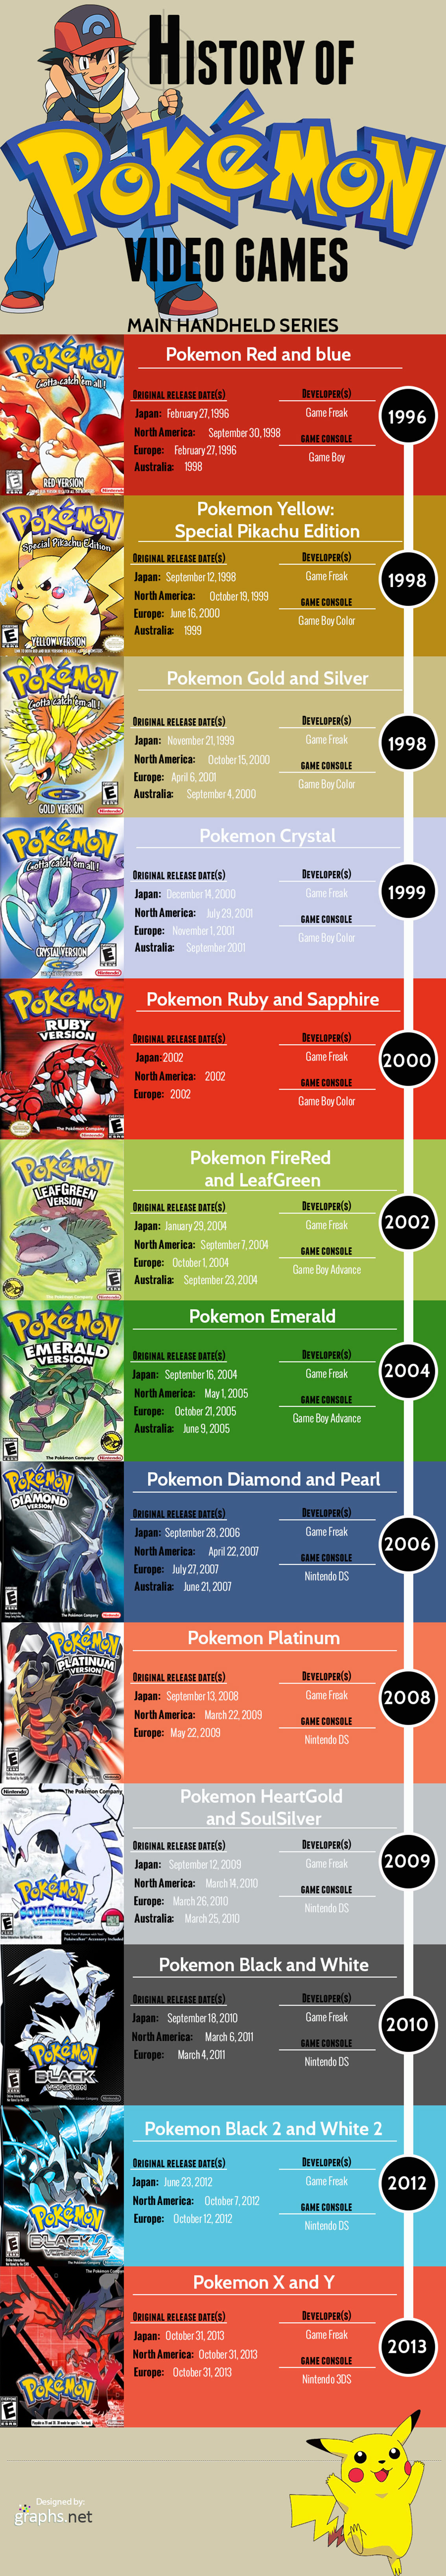 History of Pokemon Video Games Infographic